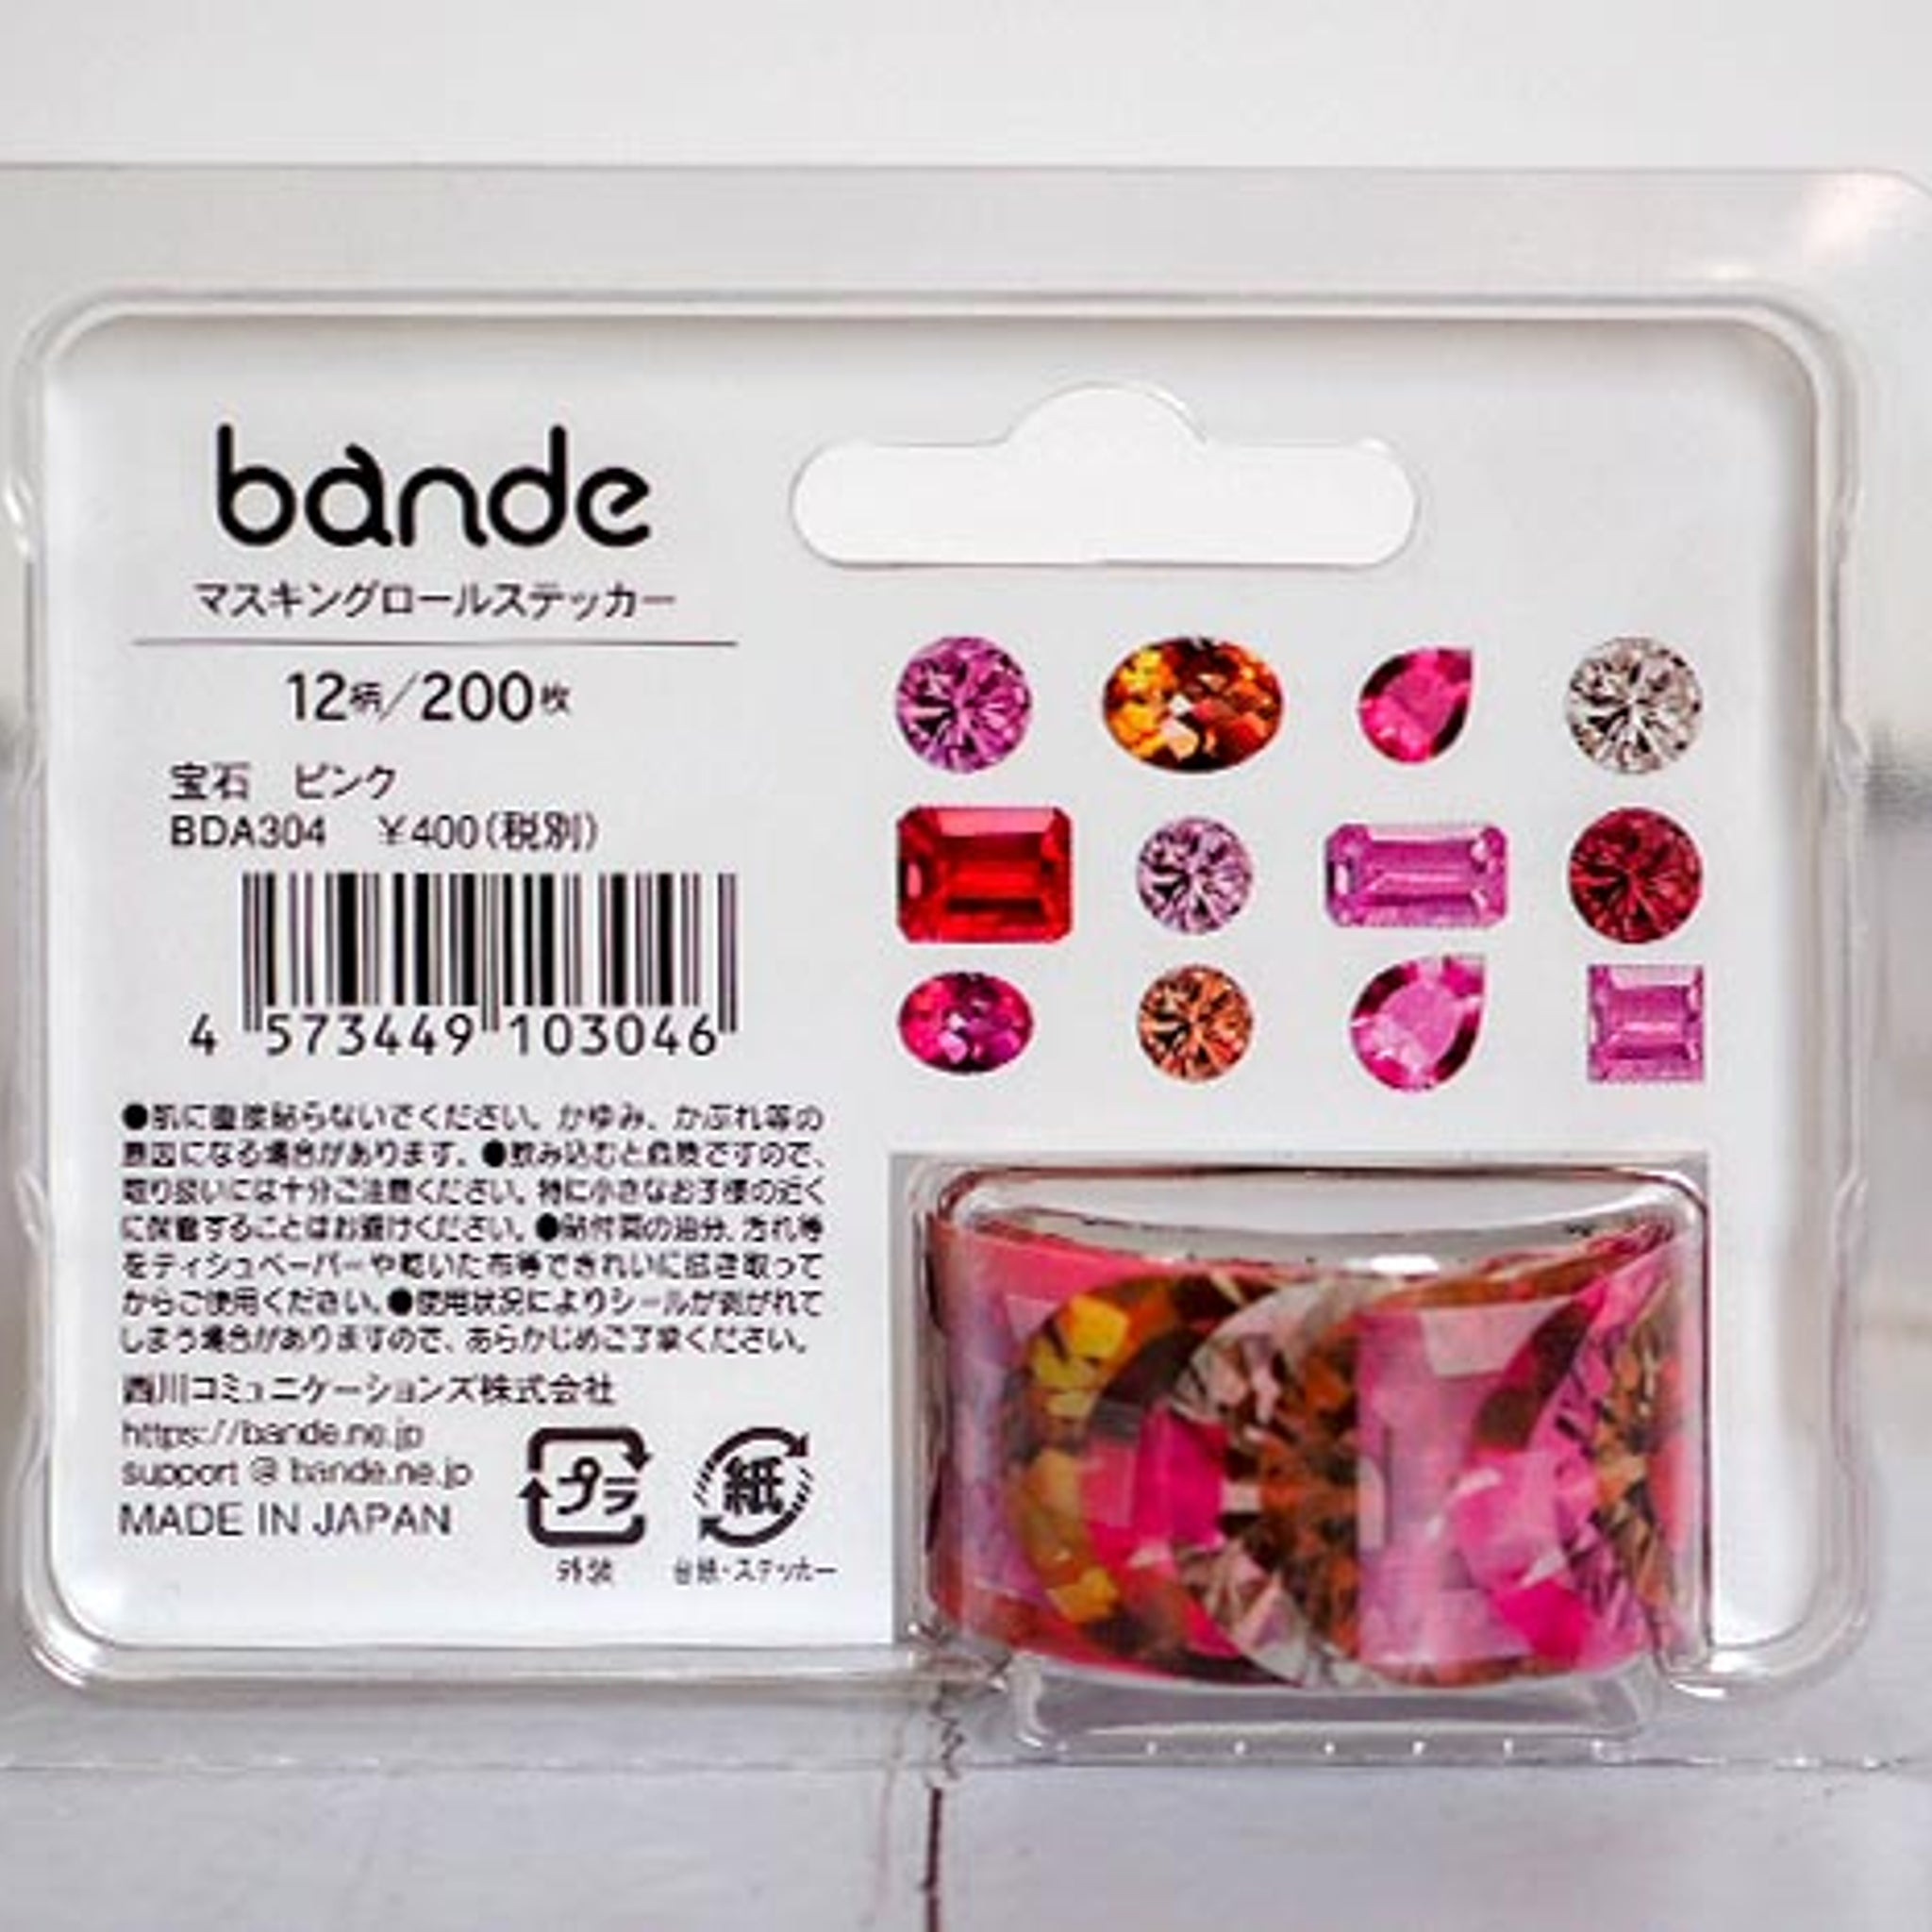 Bande Ruby Washi Roll Sticker